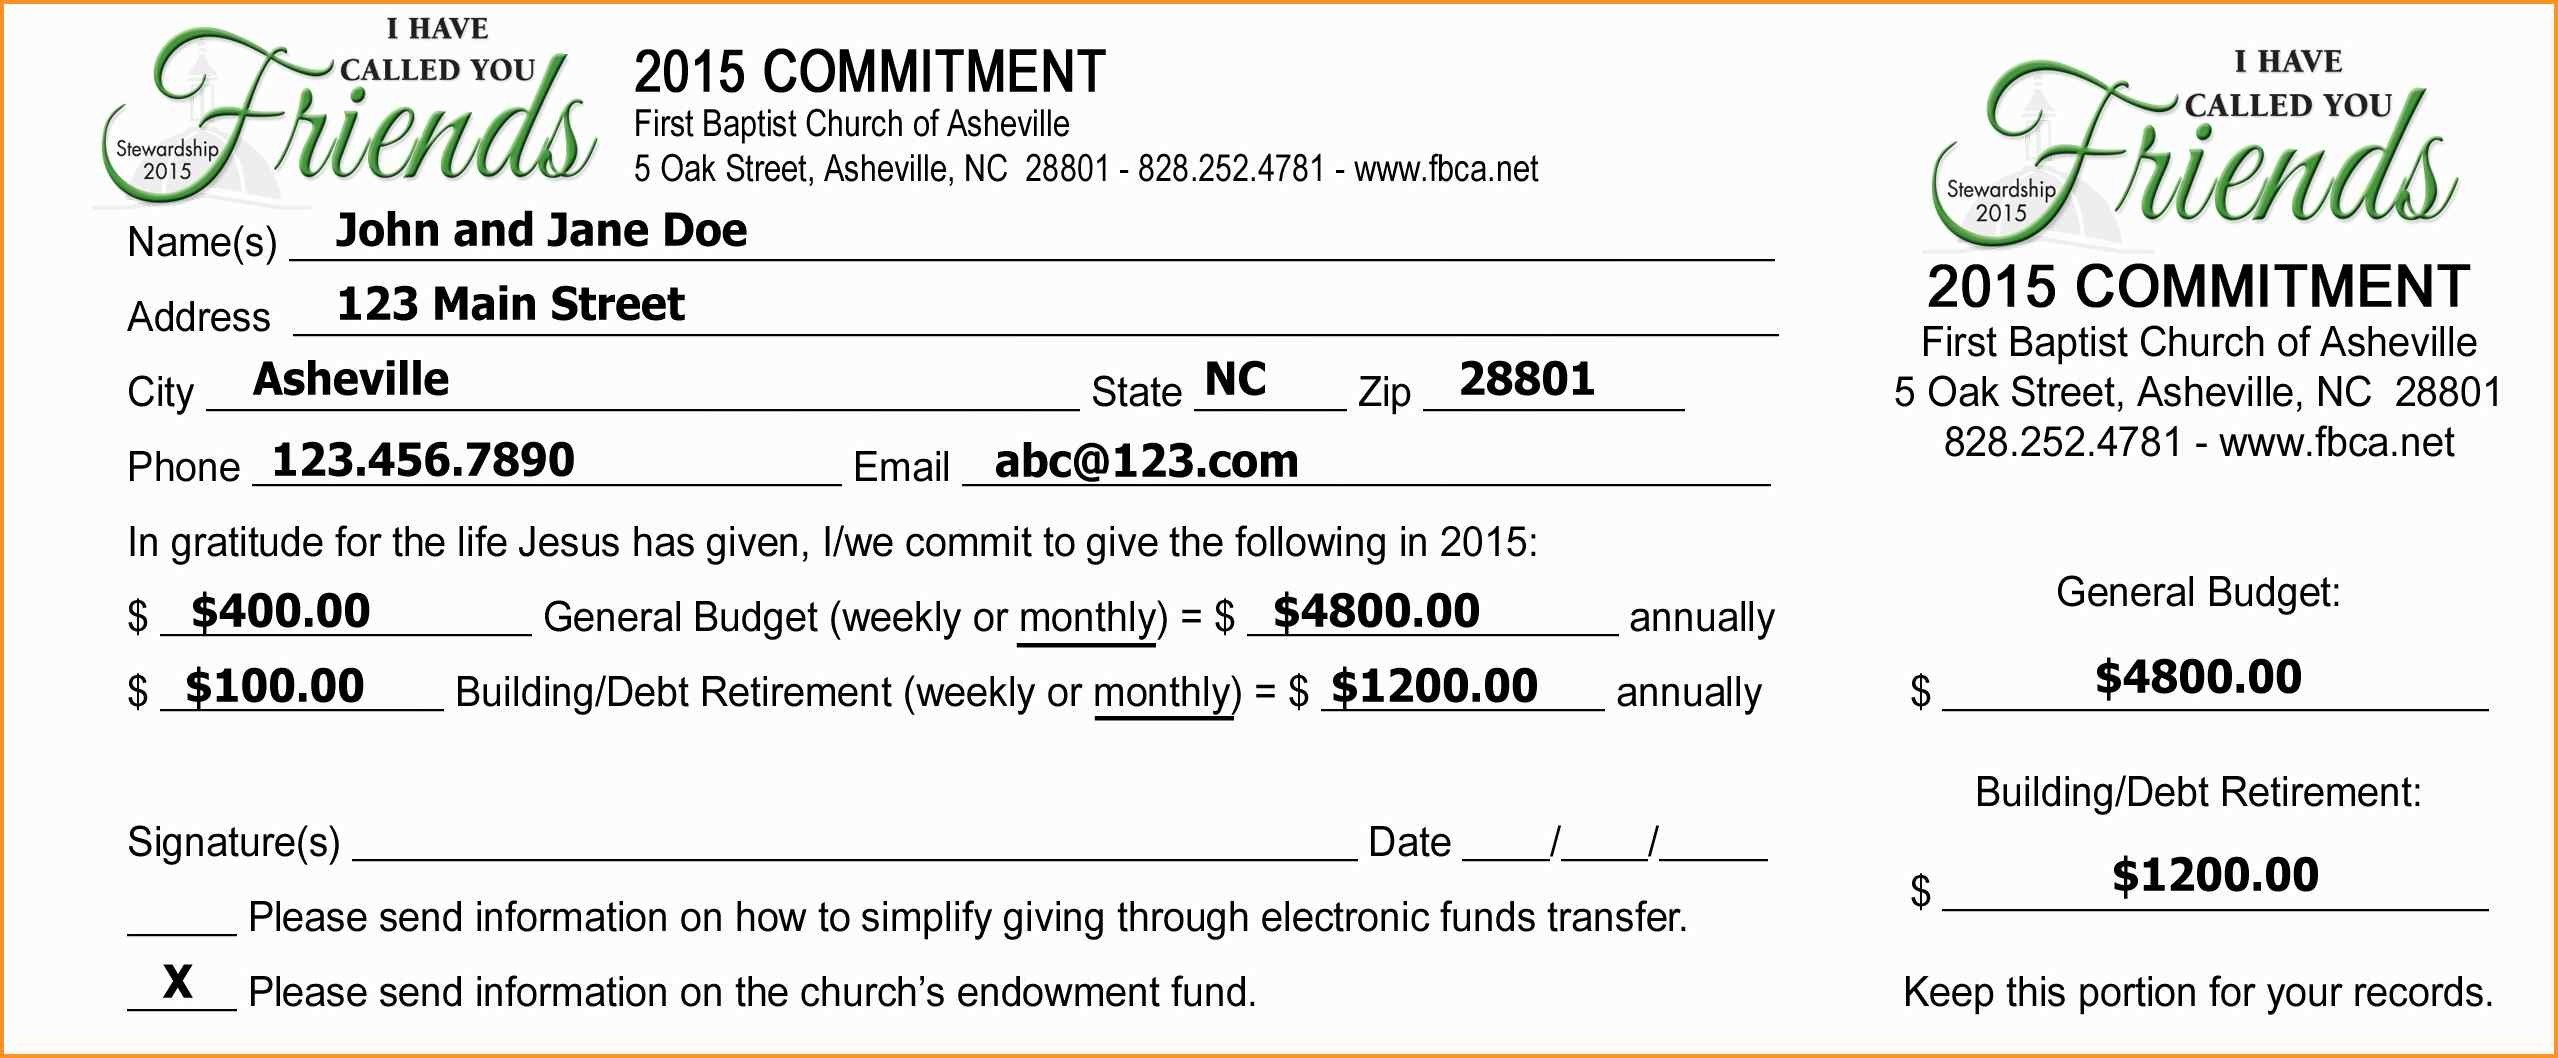 Pledge Cards Template Free Card Donation Excel Templates For Church Within Pledge Card Template For Church